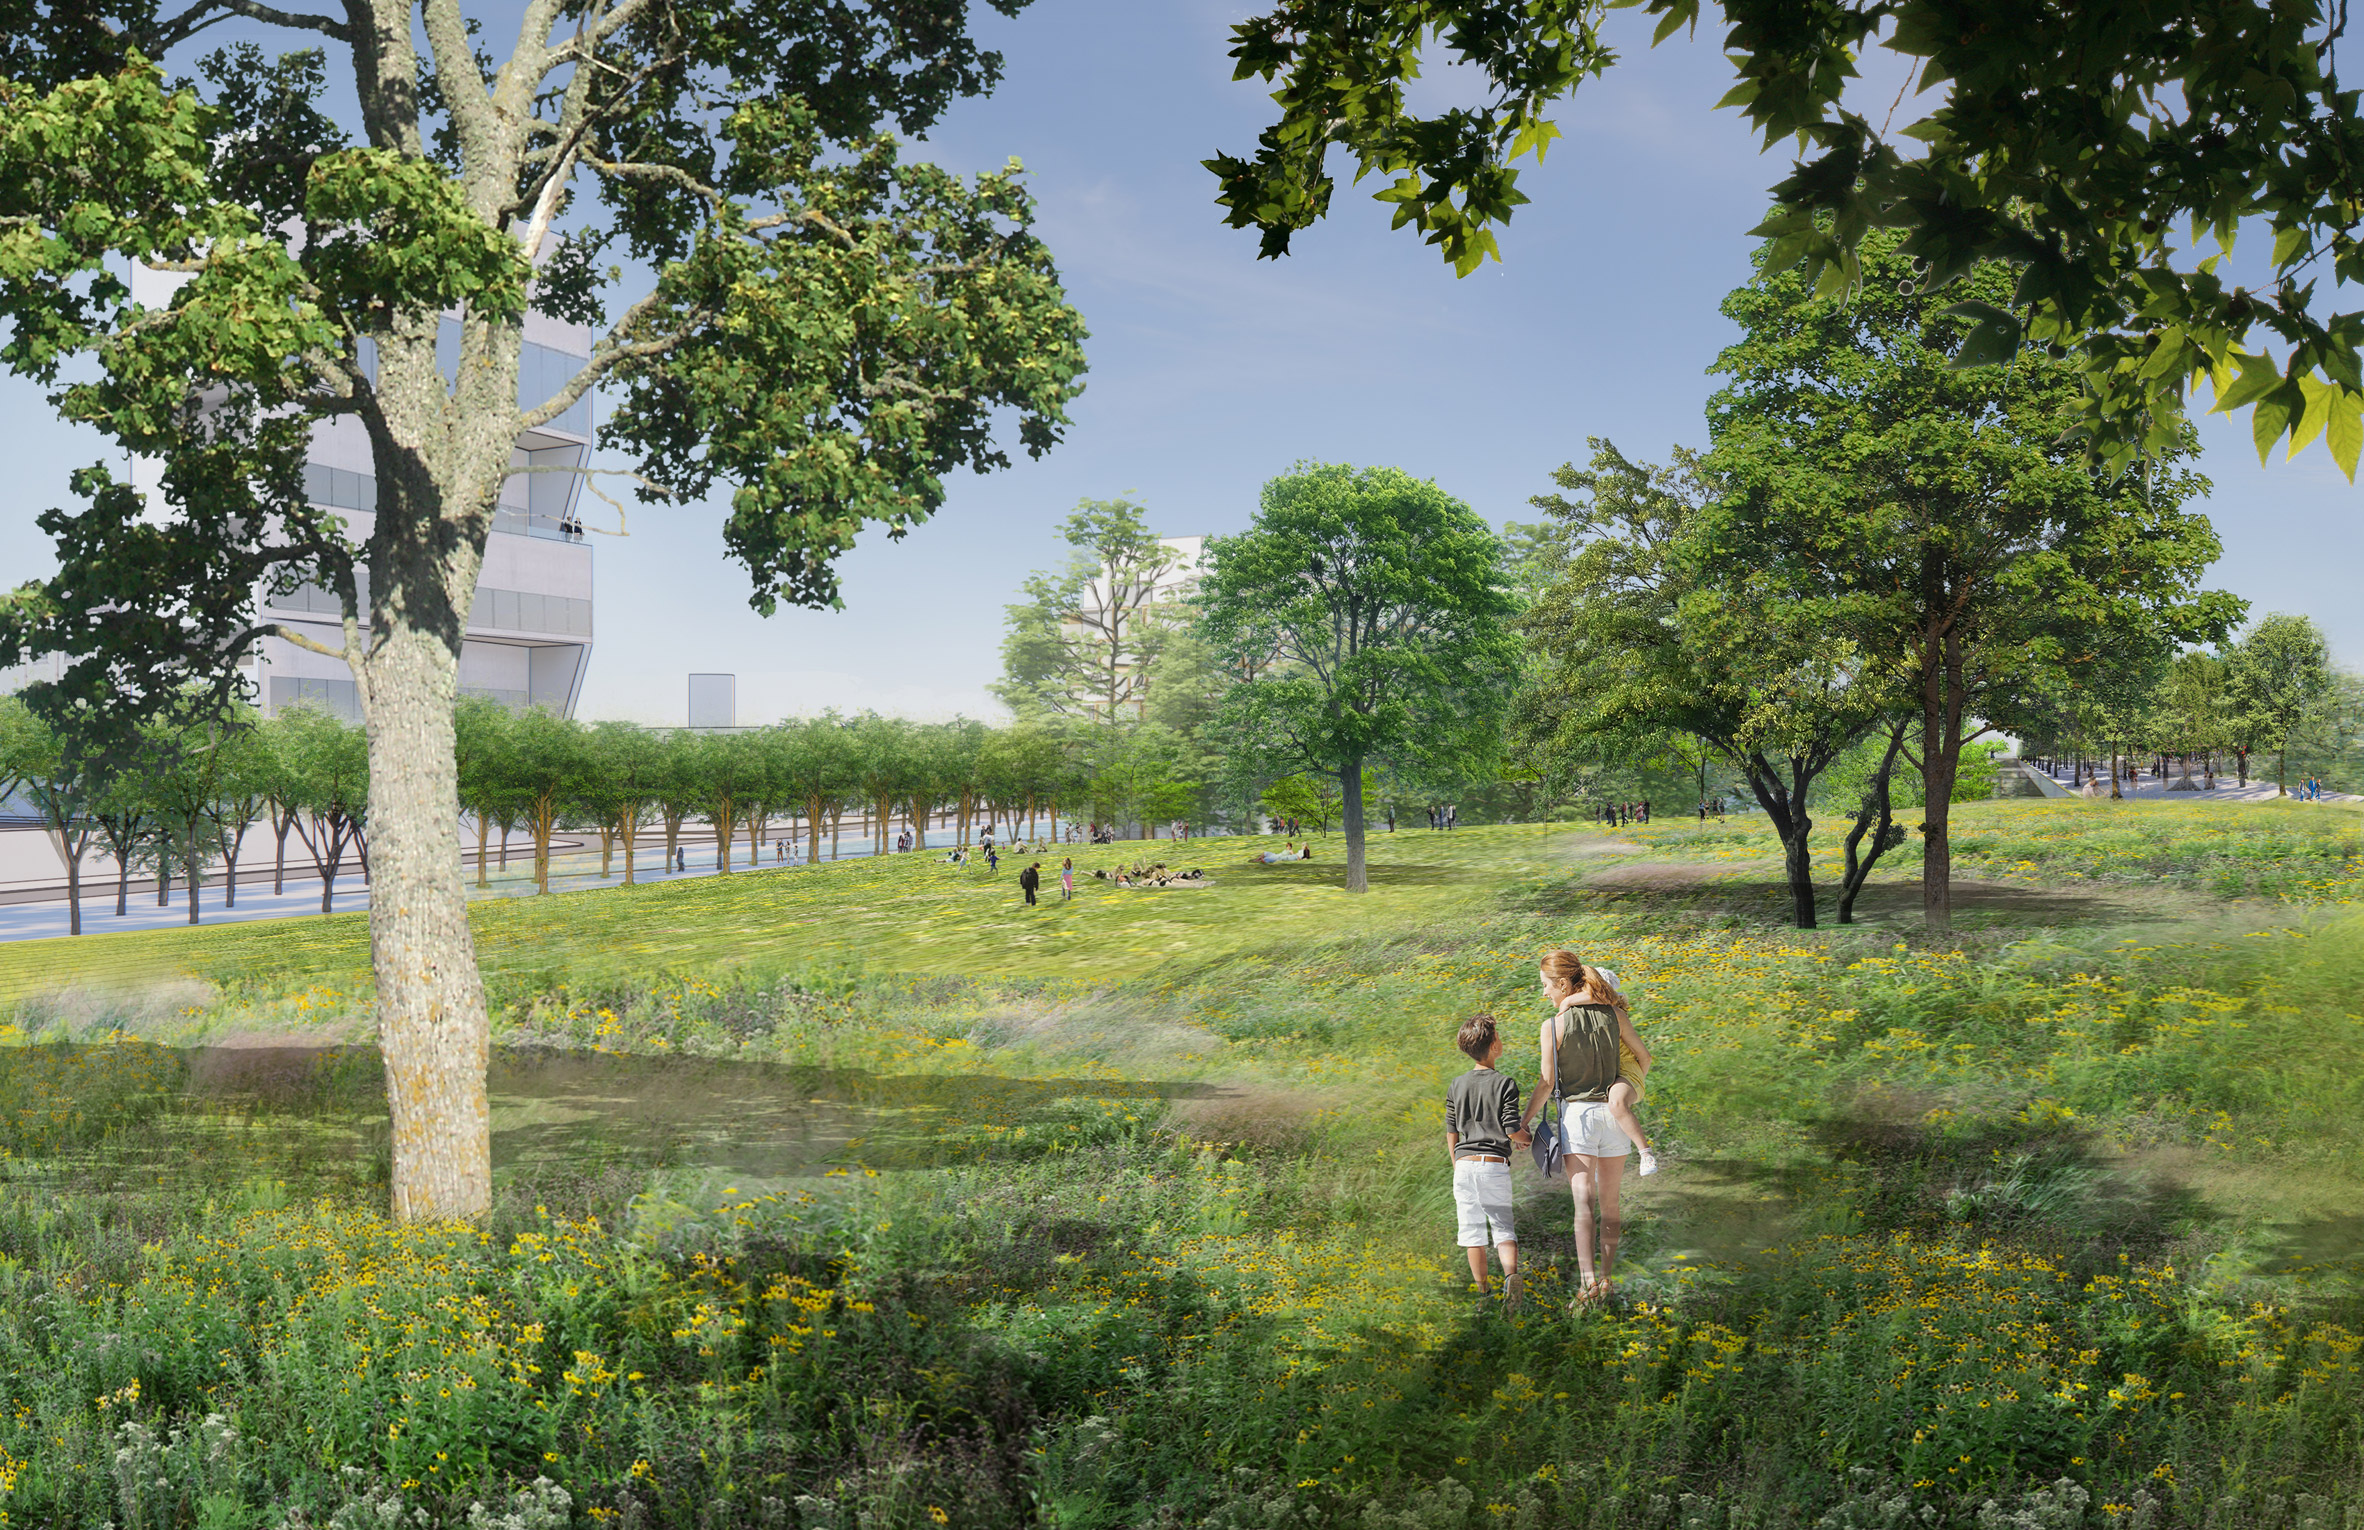 The Parco Romana Green Neighbourhood will include a large public park